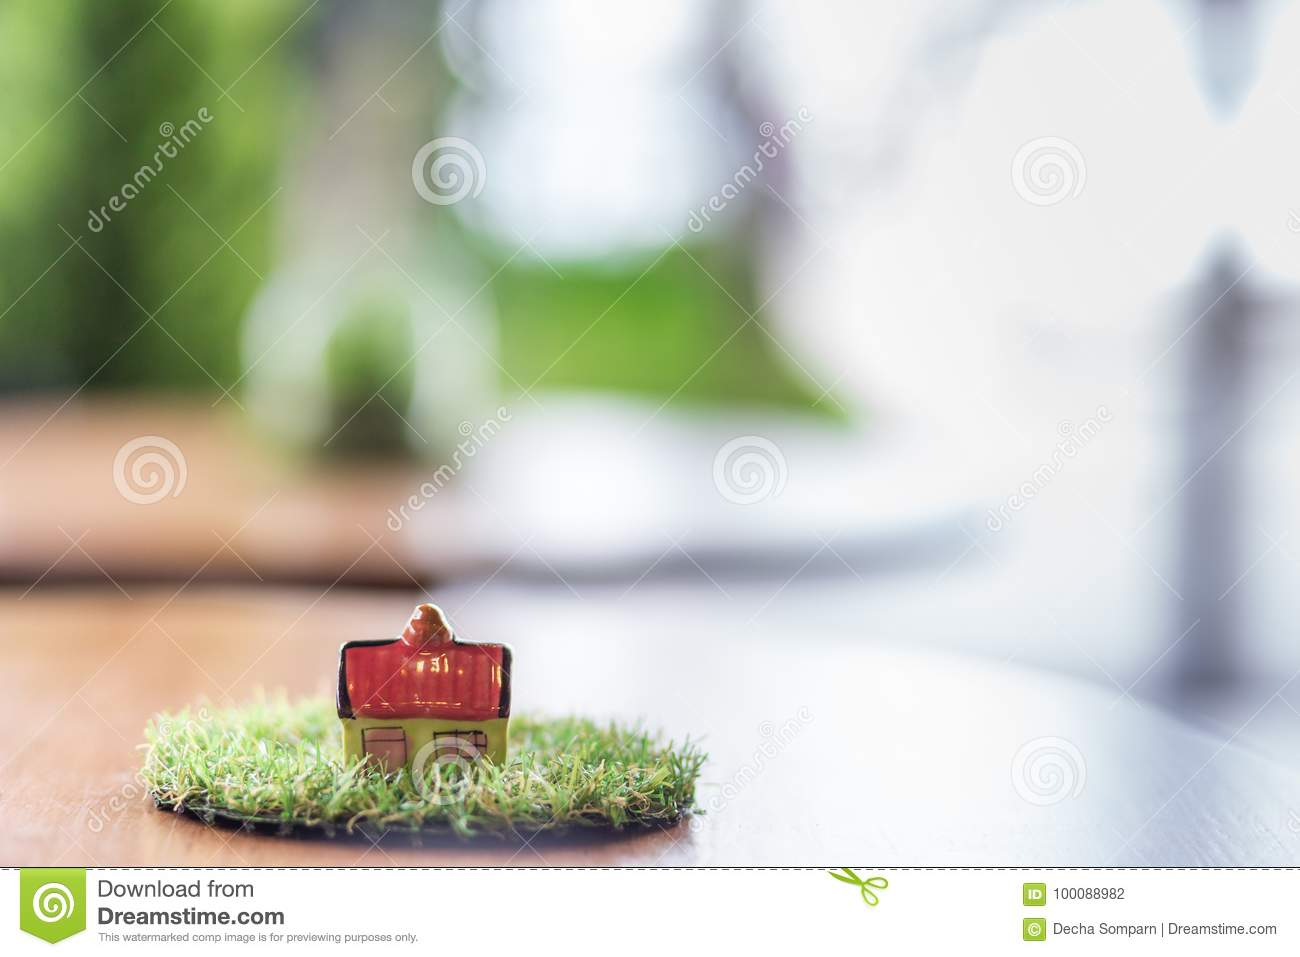 Miniature ceramic house on wooden mock up over blurred green garden on day noon light